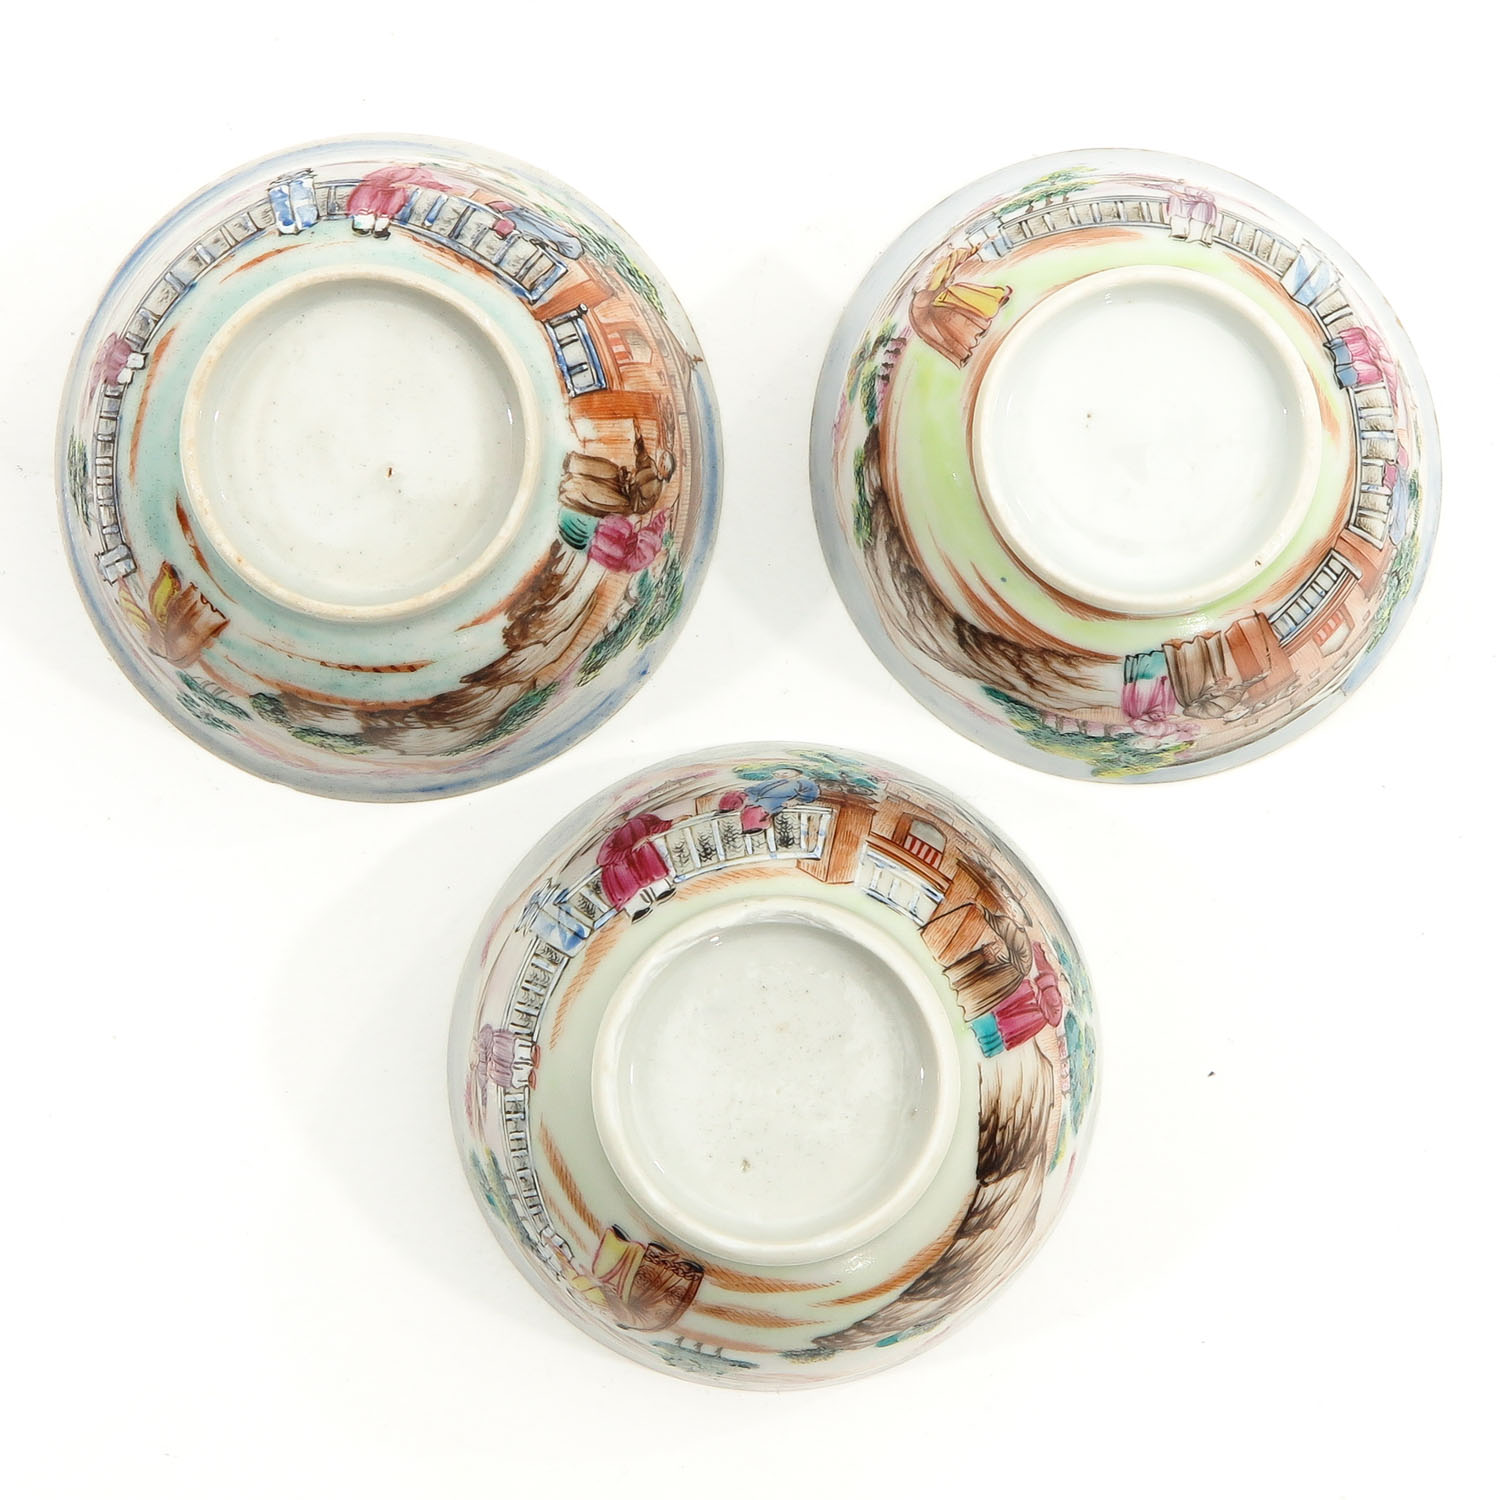 A Series of 3 Cups and Saucers - Image 6 of 10